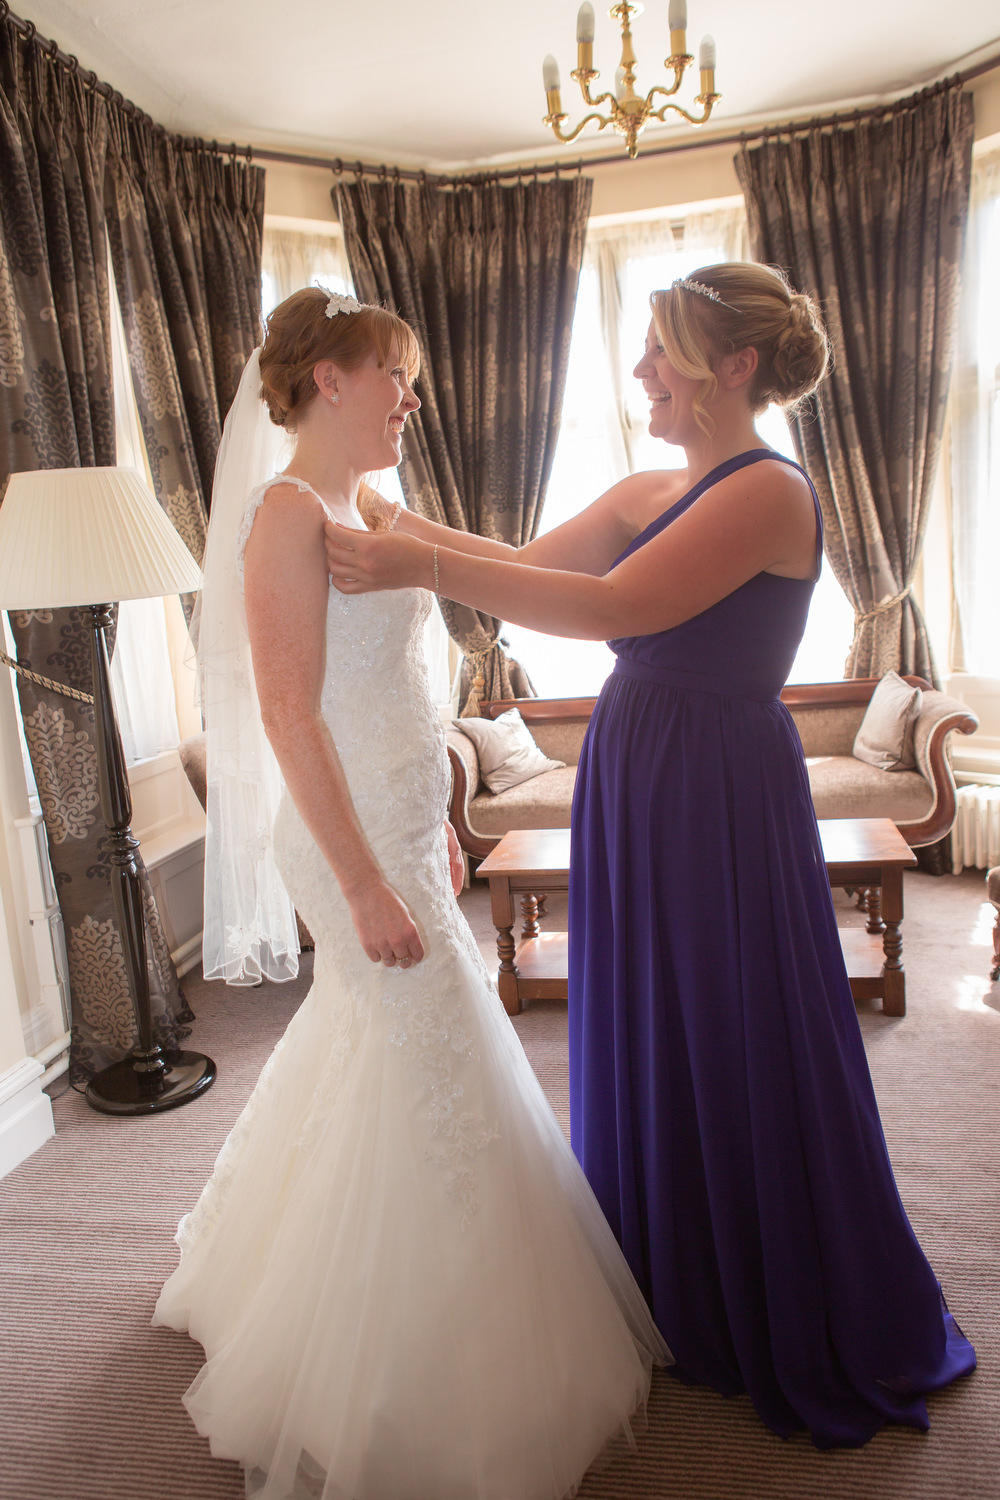 charnwood_weddings_Rothley_Court_Kelly_Rich160.JPG